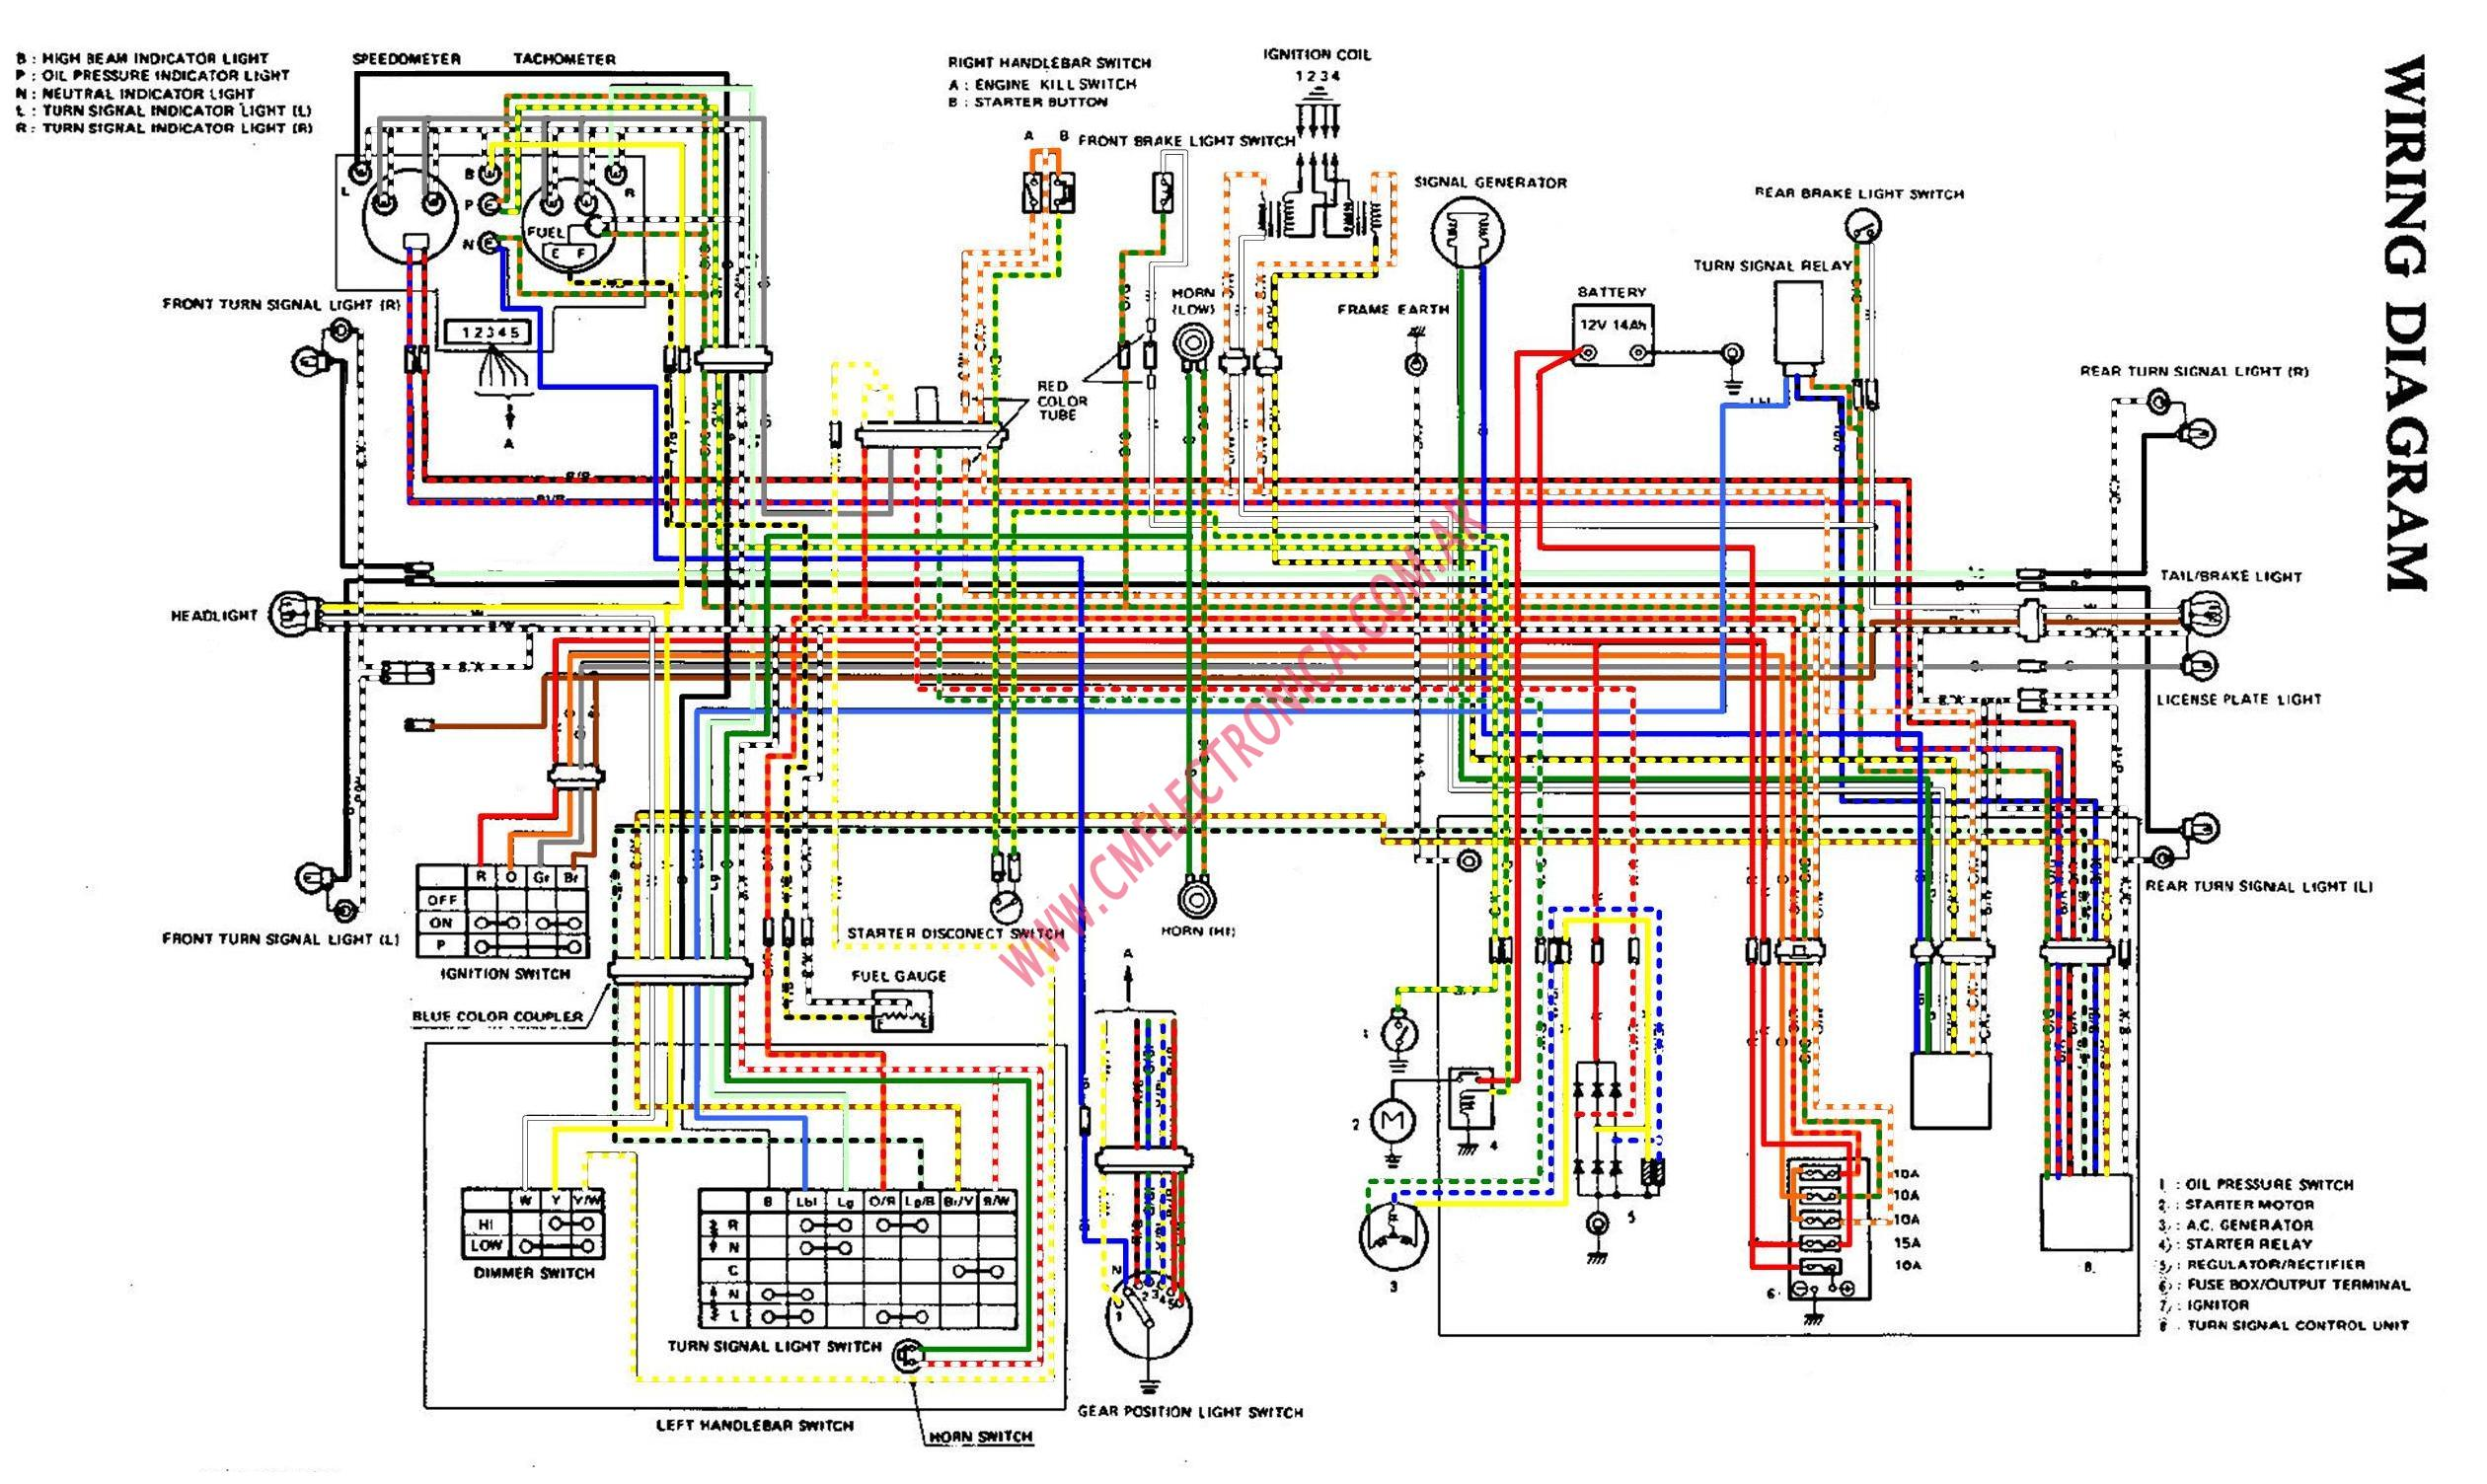 Gs 750 Wiring Diagram Auto Electrical Wiring Diagram 1986 Honda ATV Wiring  Diagram Suzuki Gs750 Wiring Diagram